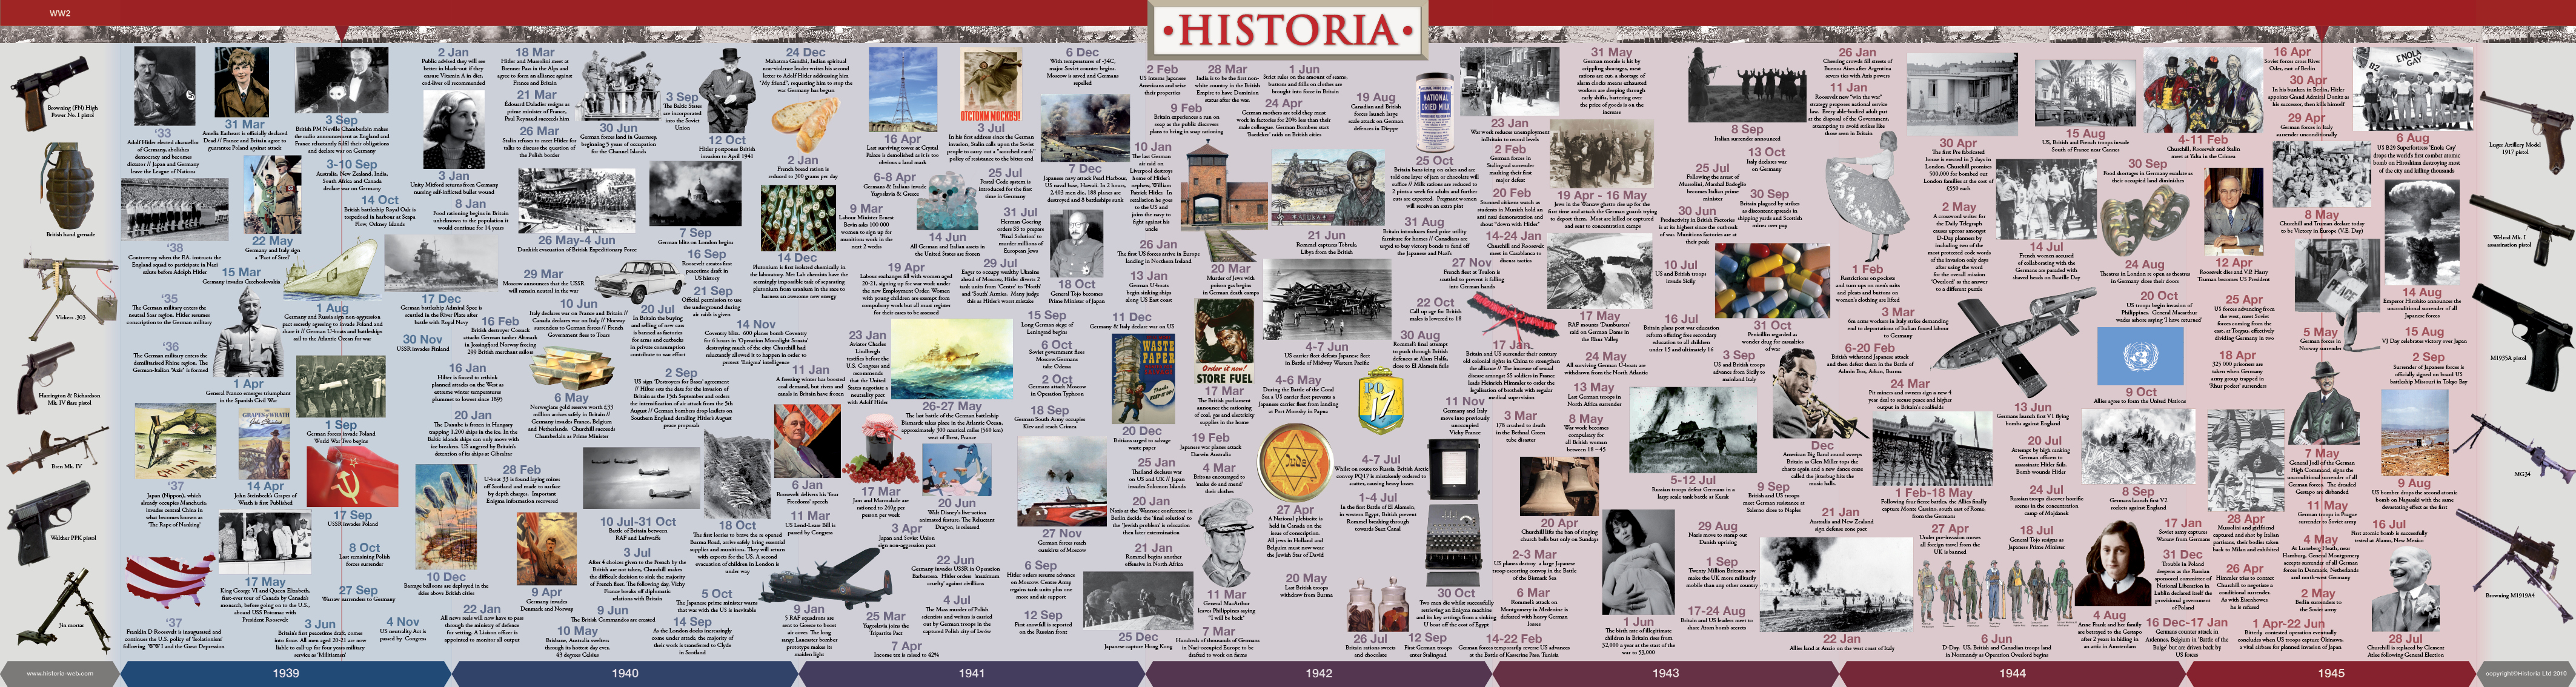 world history timeline This wide-ranging dictionary contains a wealth of information on all aspects of history, from prehistory right up to the present day it includes biographies of key figures in world history, historical summaries for each.